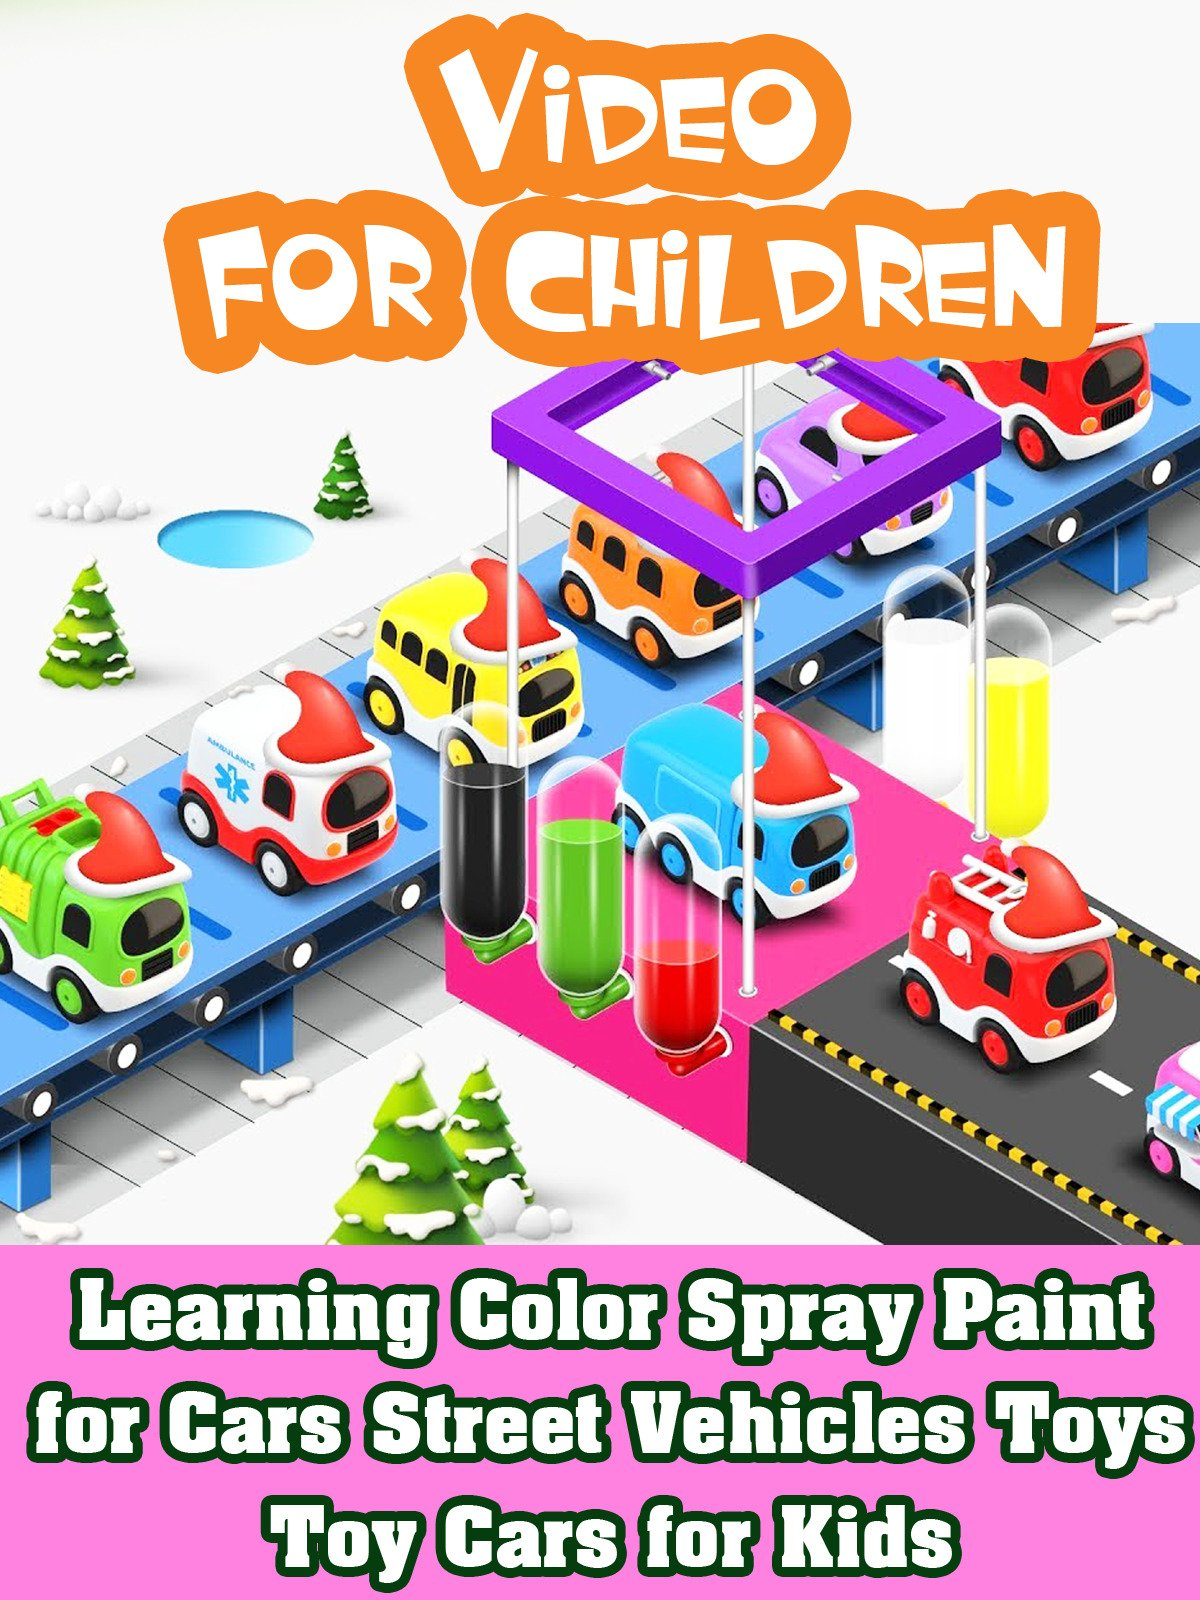 Learning Color Spray Paint for Cars Street Vehicles Toys